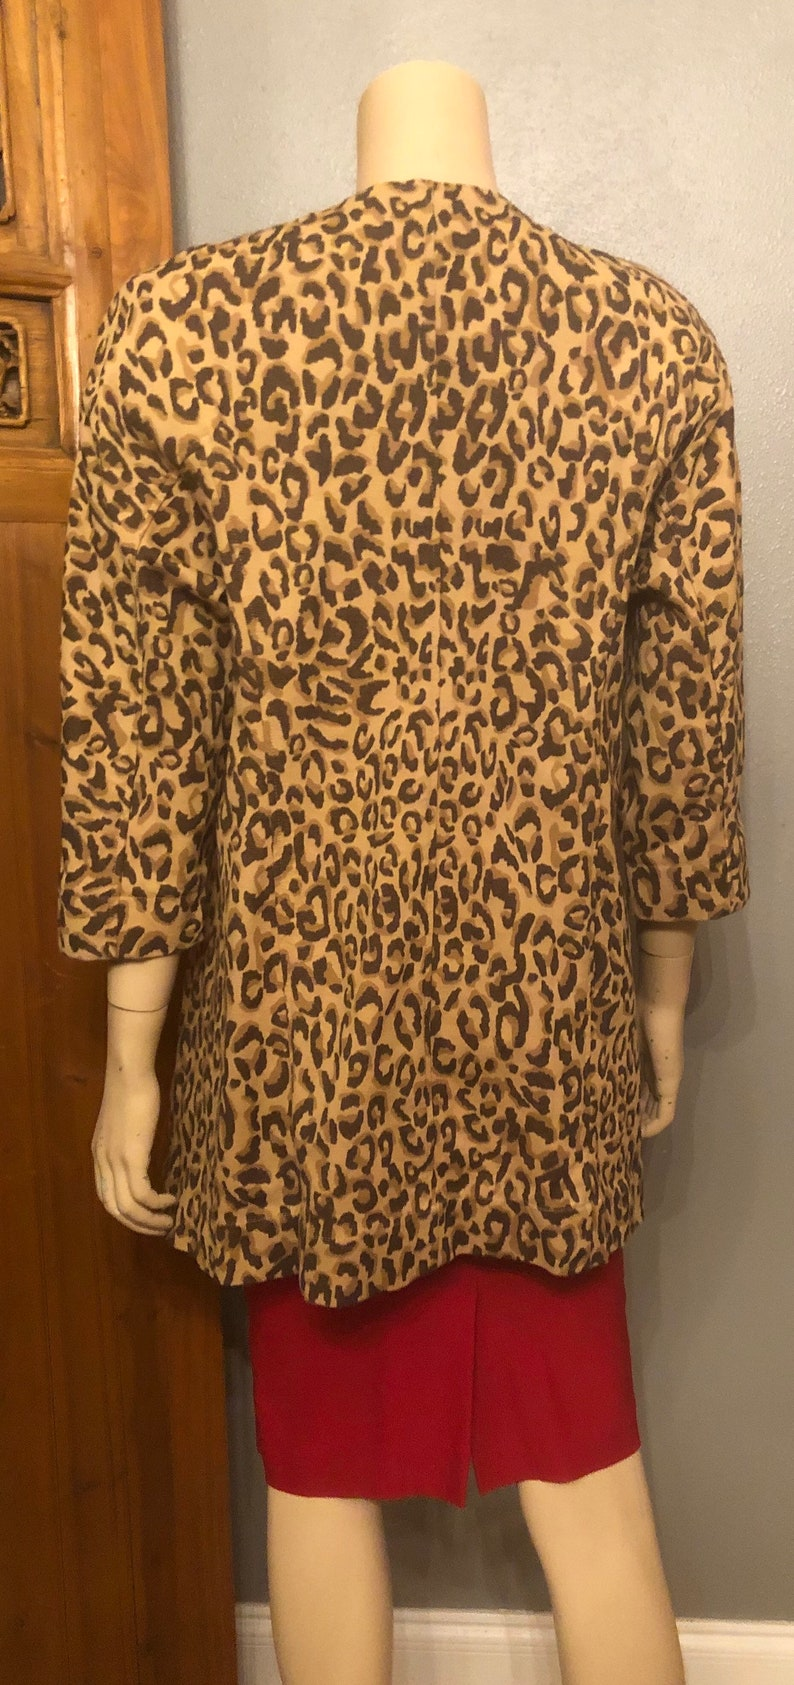 Awesome Vintage Designer 60s style Leopard Jacket by Carol Anderson by Invitation  Medium